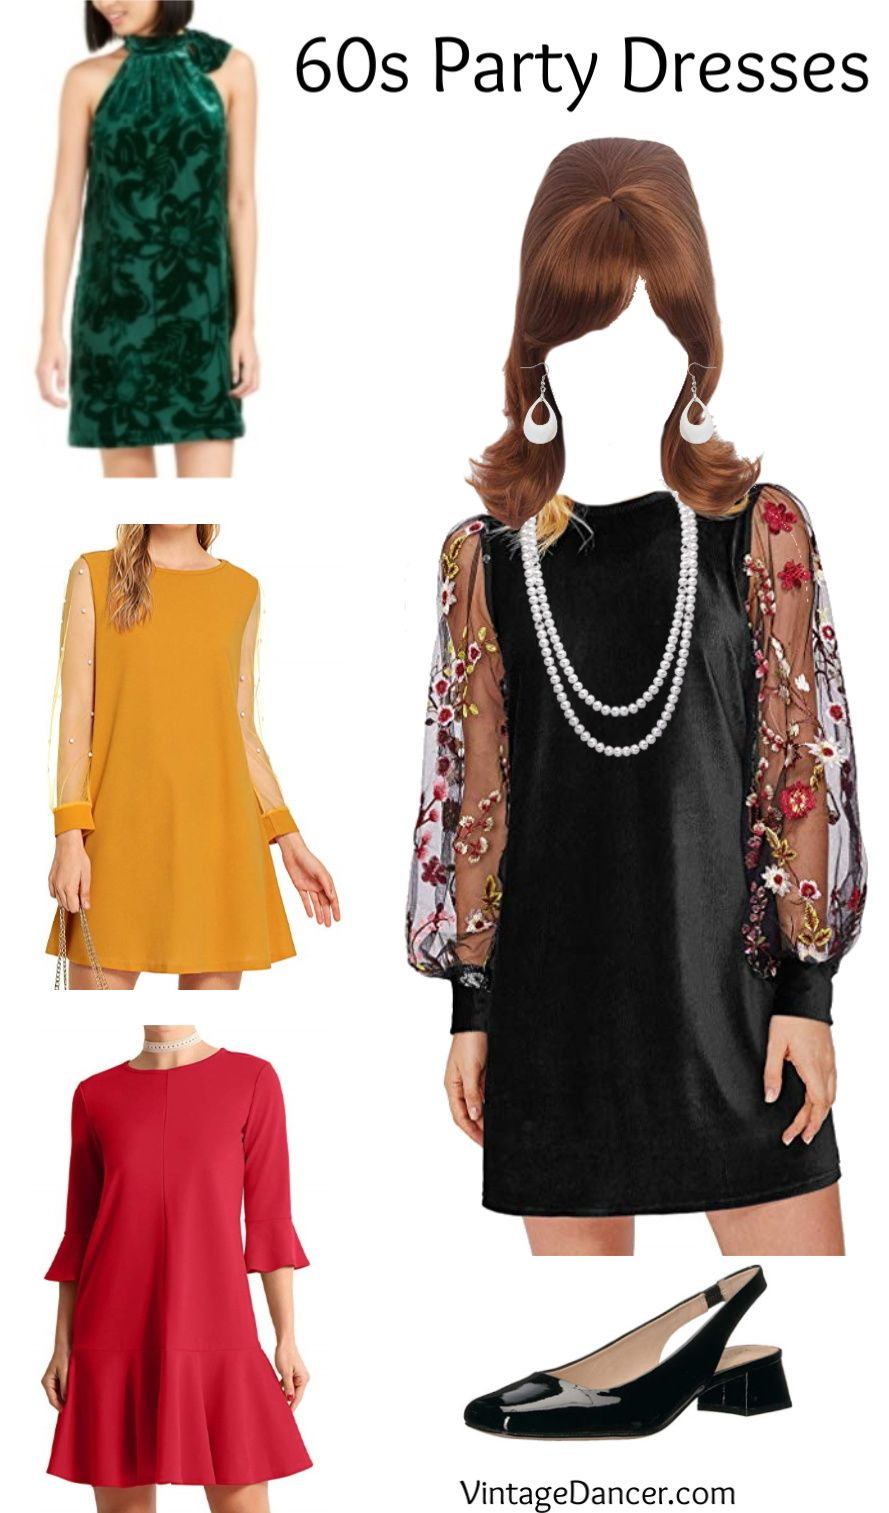 1960s Outfit Ideas Mod Hippie Casual Housewife Party Cocktail Dress Outfit Party Dress Outfits Groovy Fashion [ 1513 x 889 Pixel ]